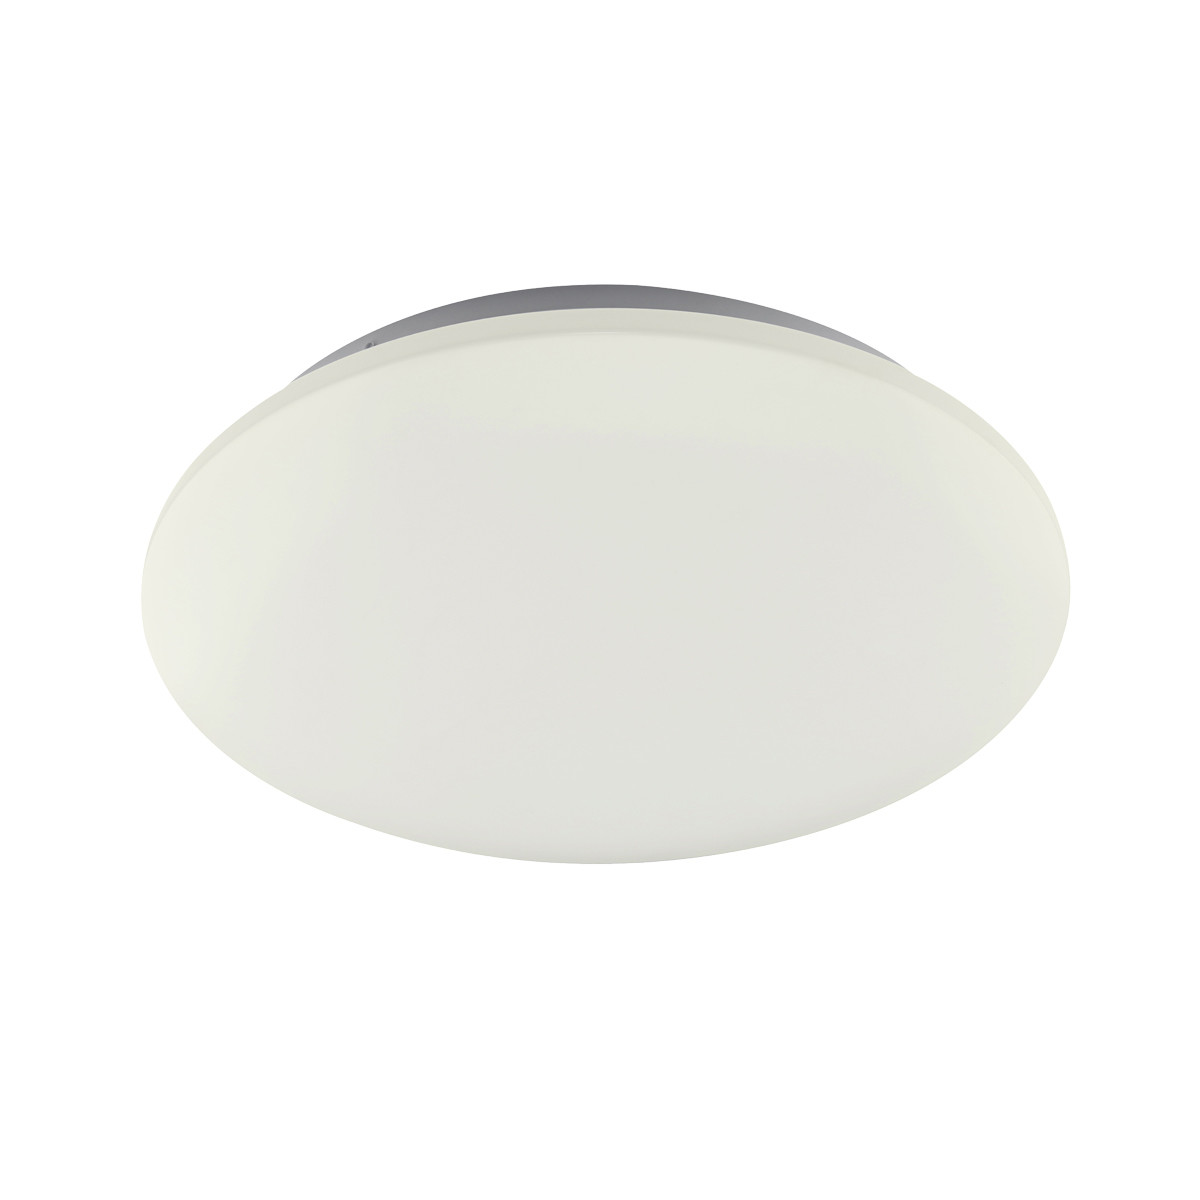 Zero II Flush 38cm Round 36W LED 3000K, 2350lm, White